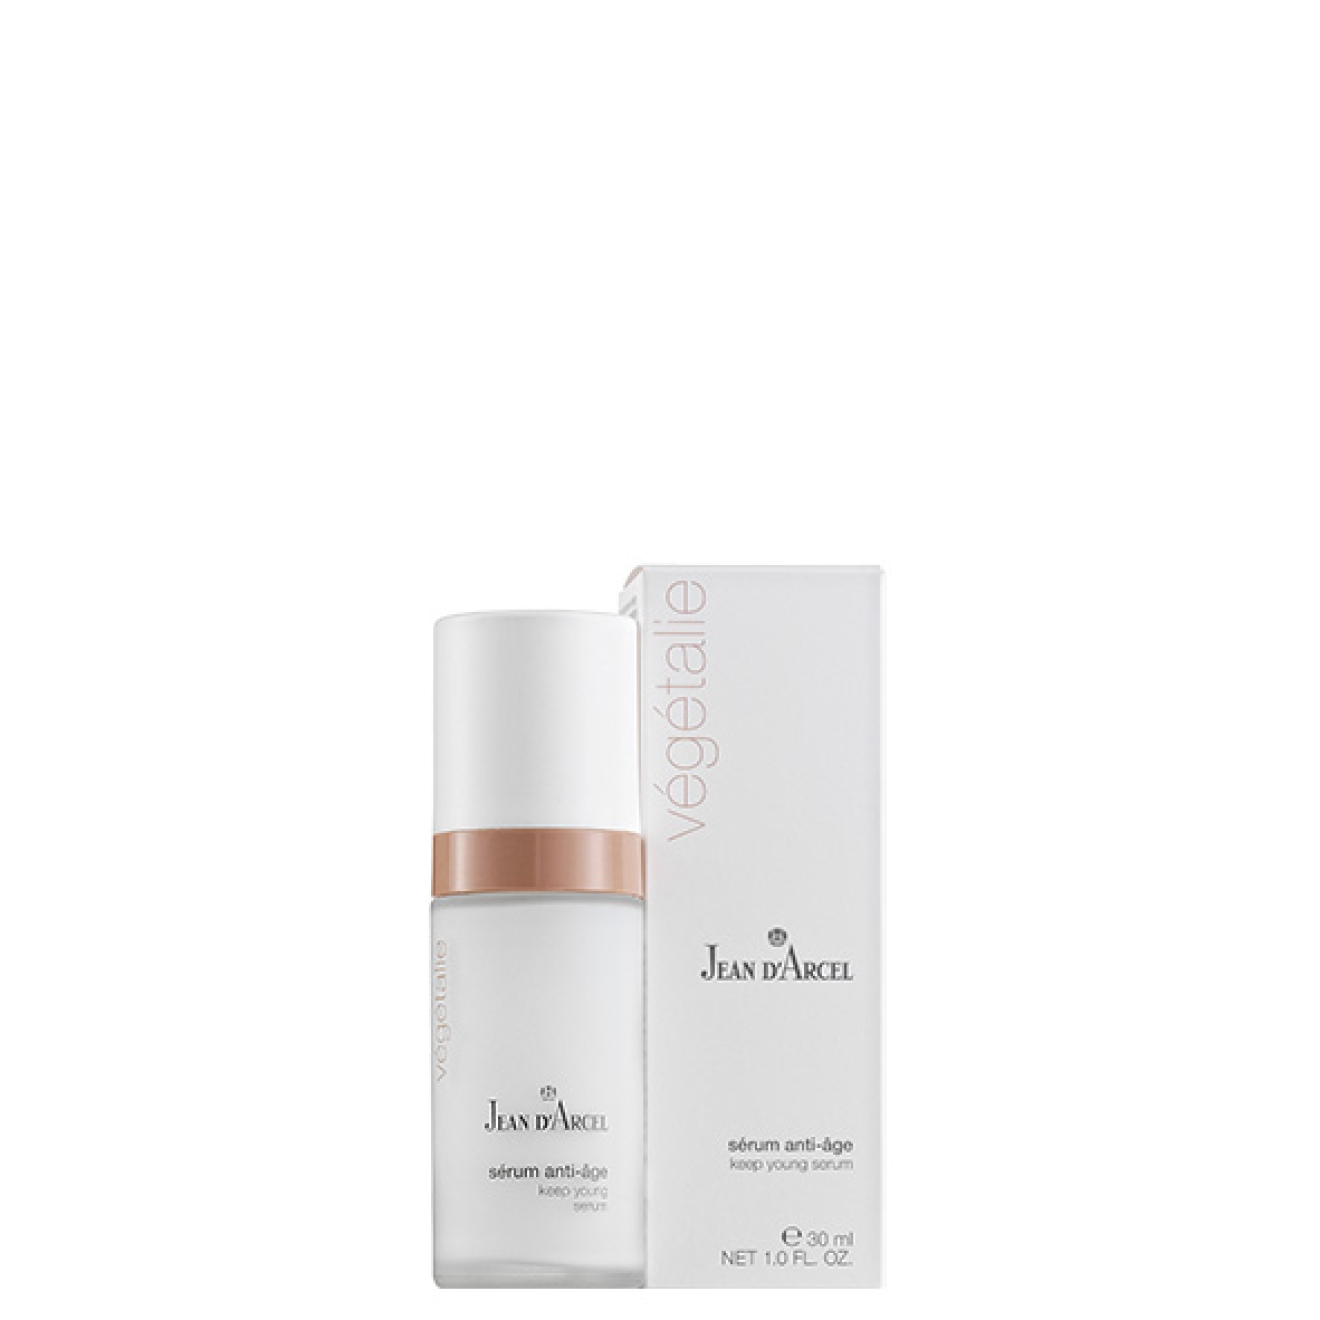 Jean D'Arcel Vegetalie Serum Anti-Age